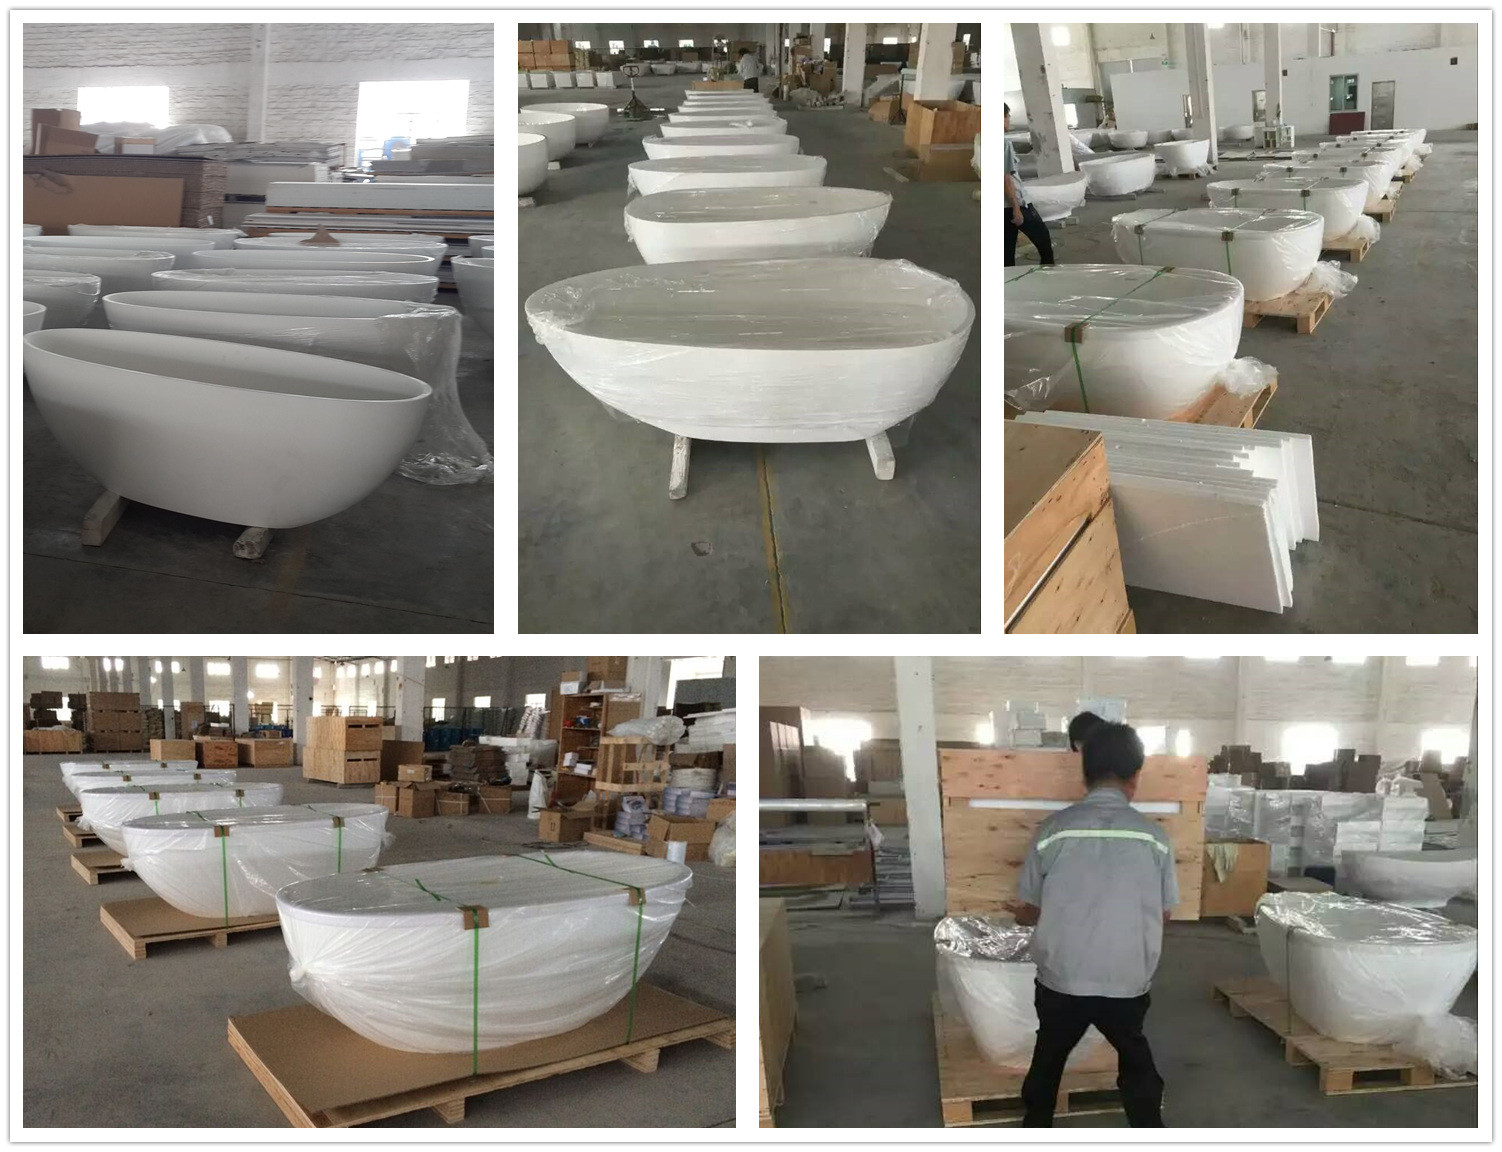 Bellissimo-Boat Shaped Stone Resin Freestanding solid surface bathtub-9